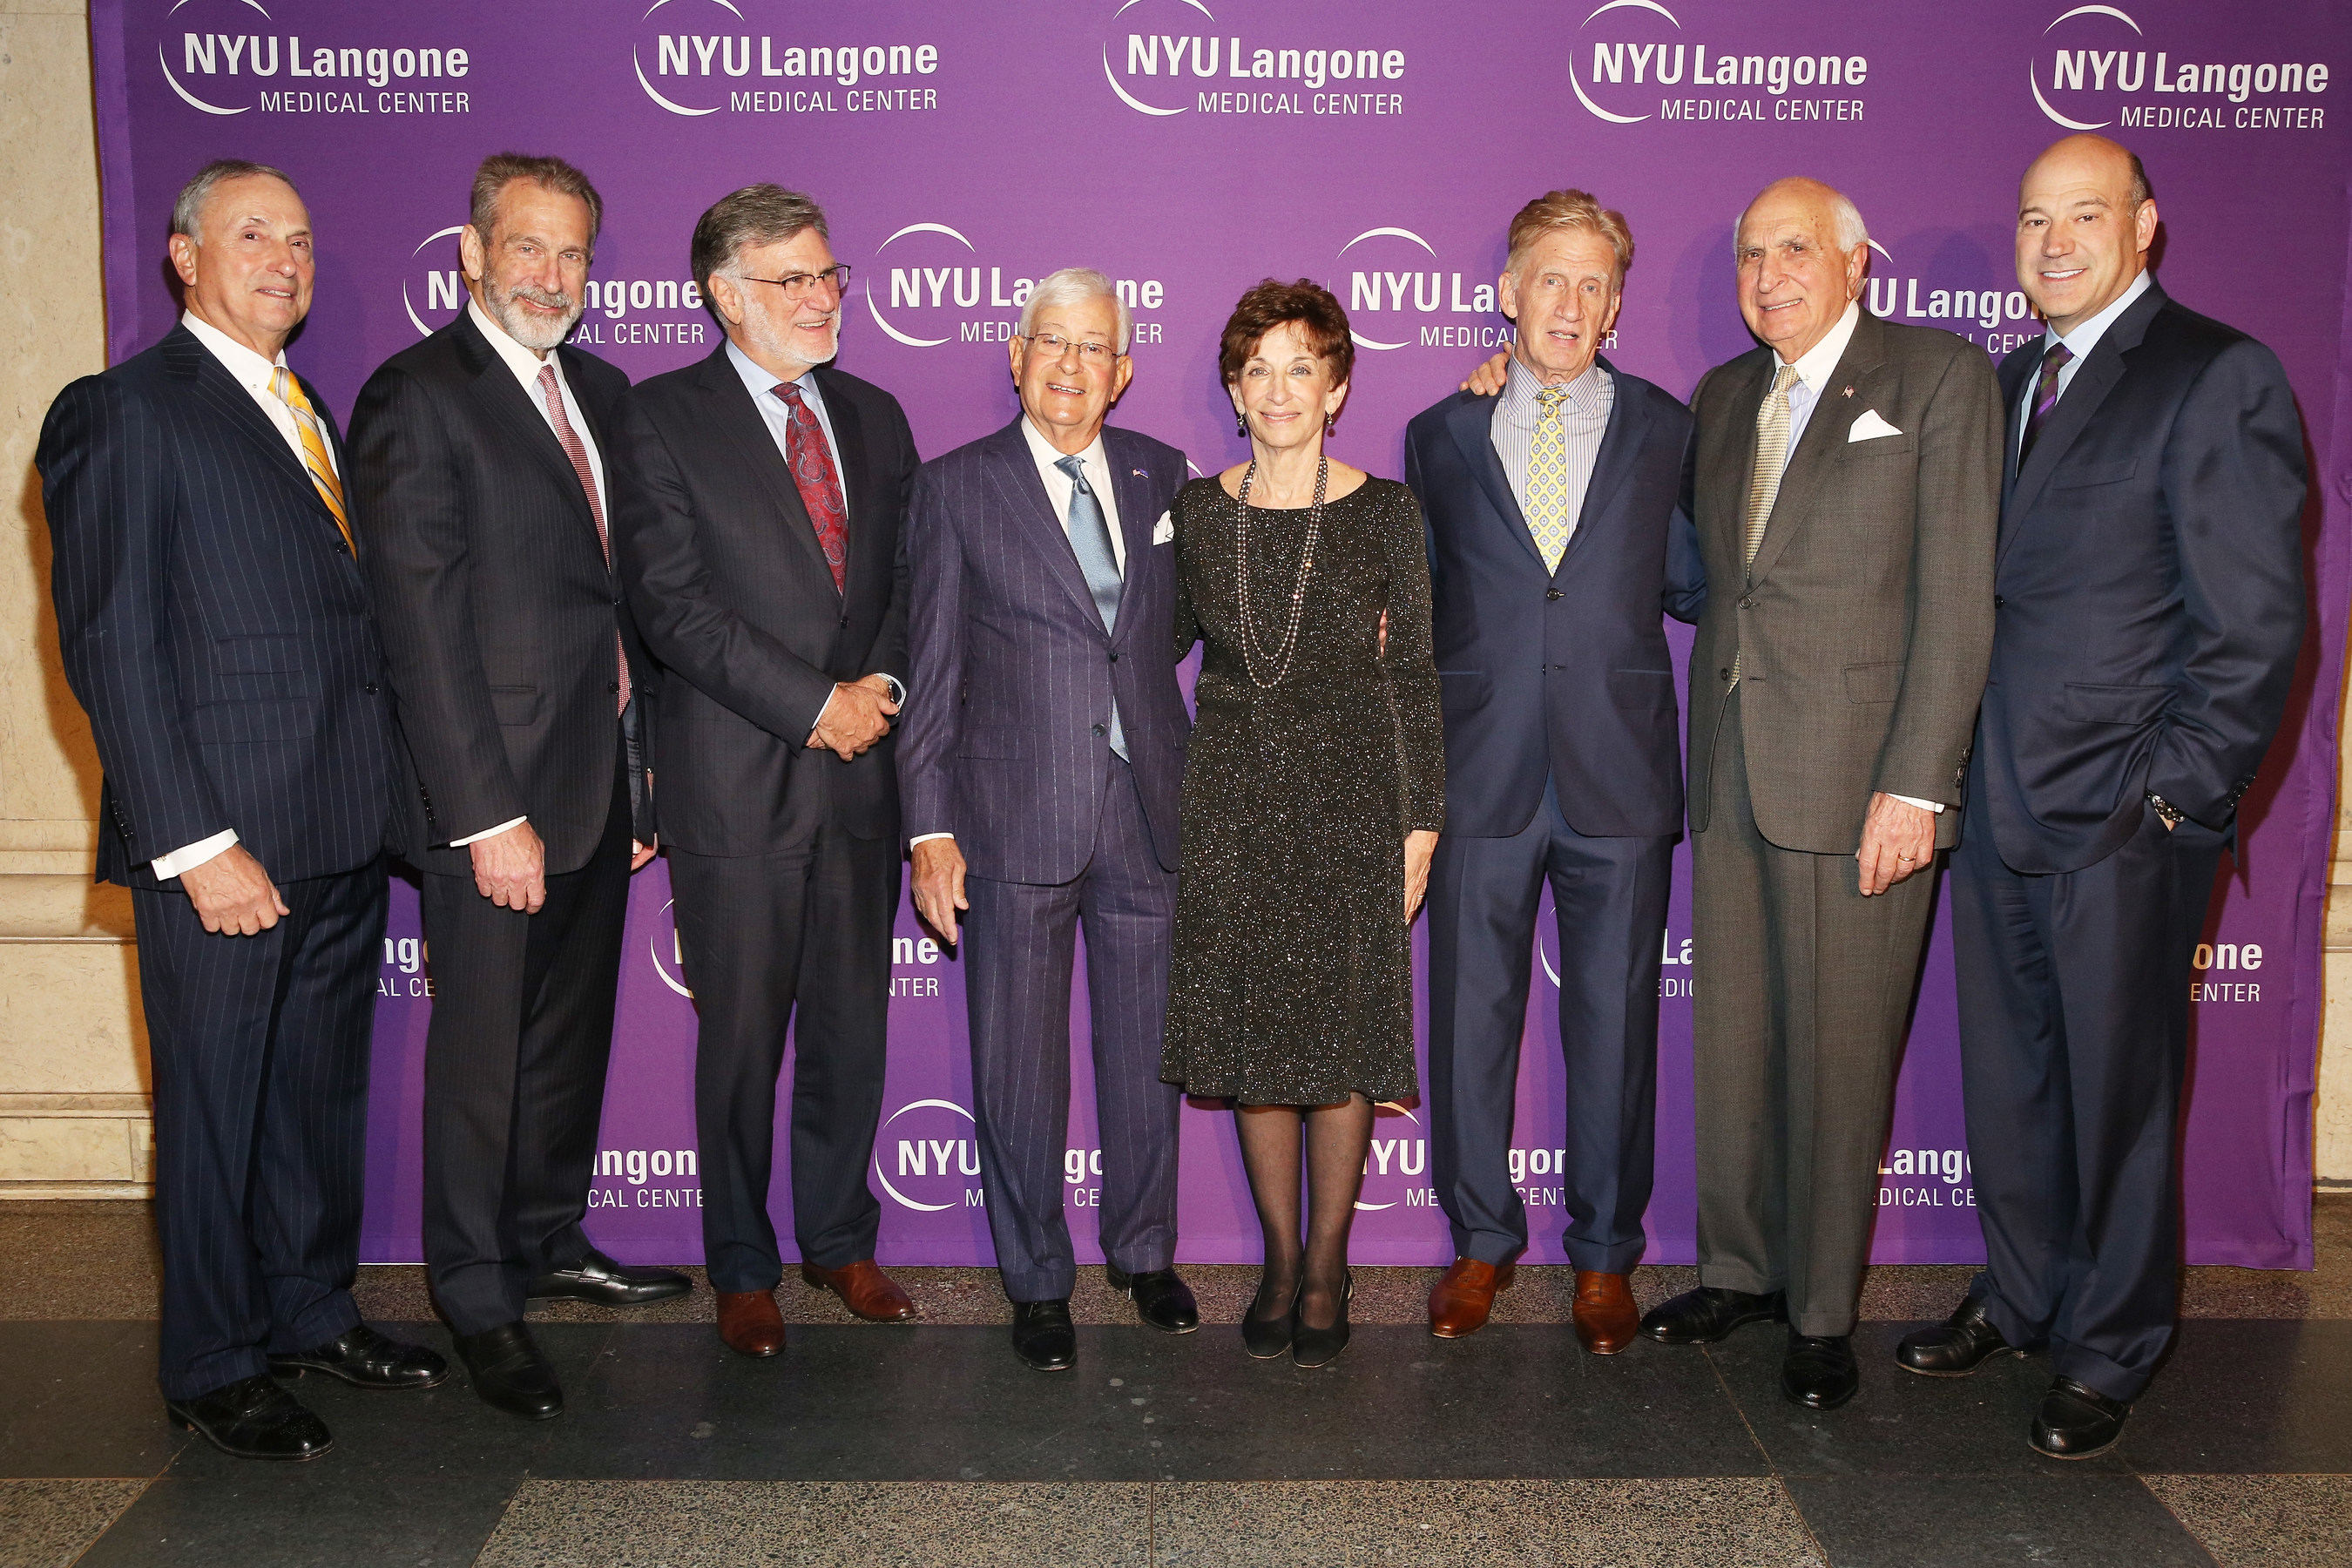 NYU Langone Medical Center's 2016 Musculoskeletal Ball